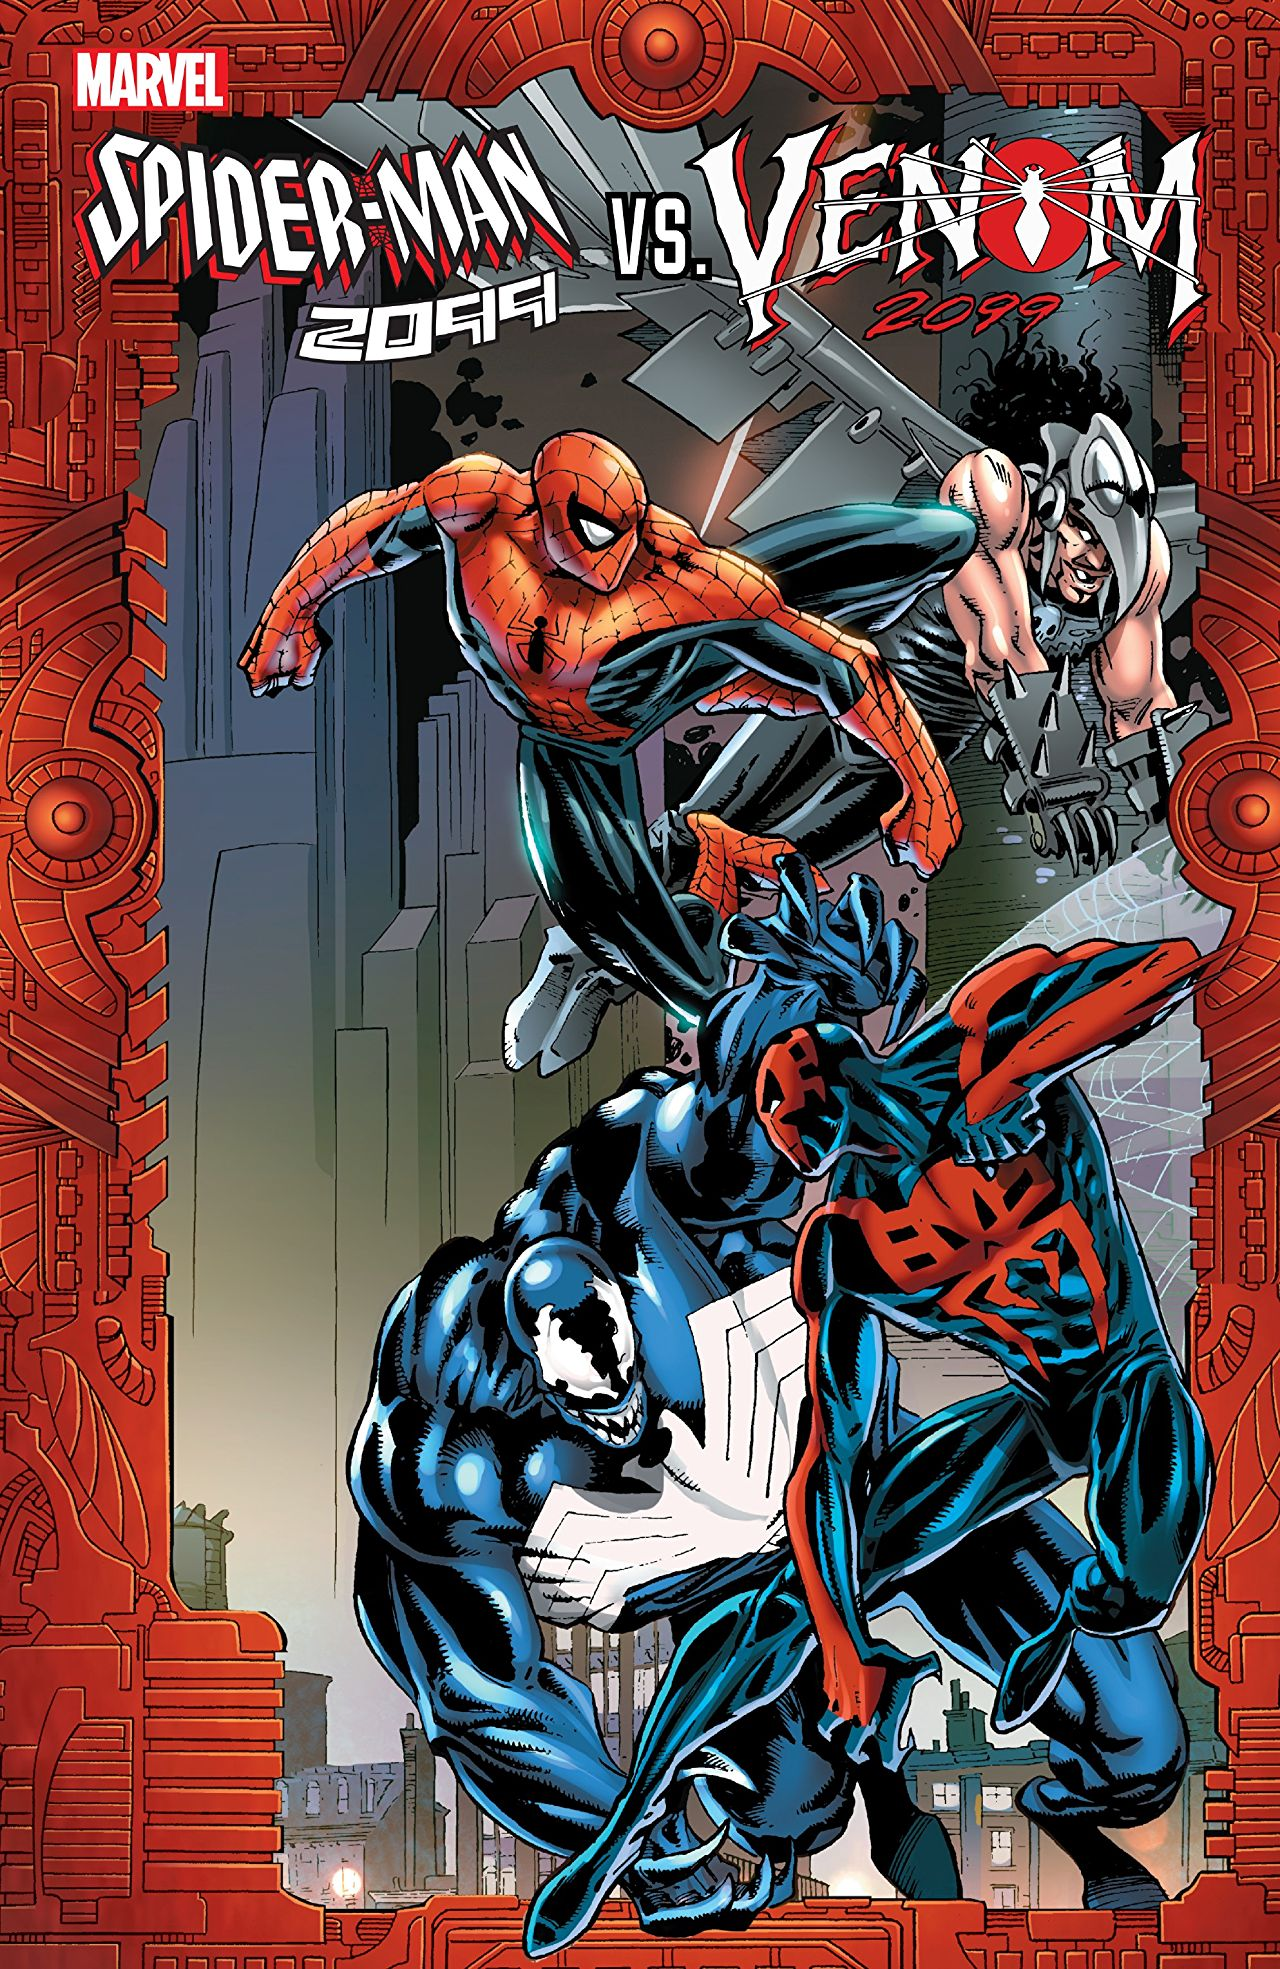 Spider-Man 2099 Vs. Venom 2099 (Trade Paperback)